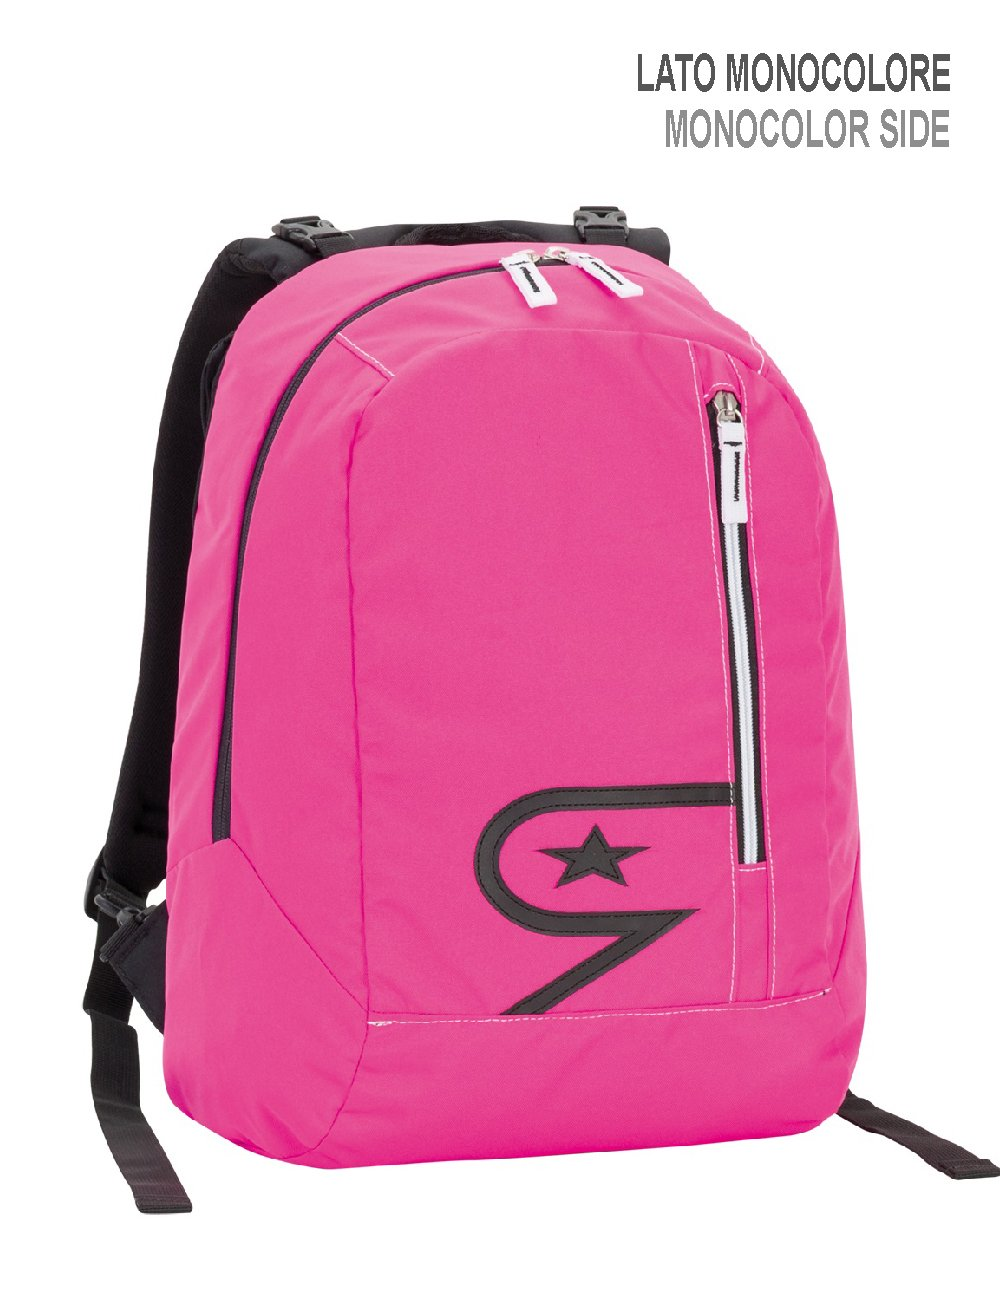 c7a8ce8ed3 Zaino Seven The Double, 27 litri, Rosa Camouflage, Scuola & Tempo Libero:  Amazon.it: Valigeria